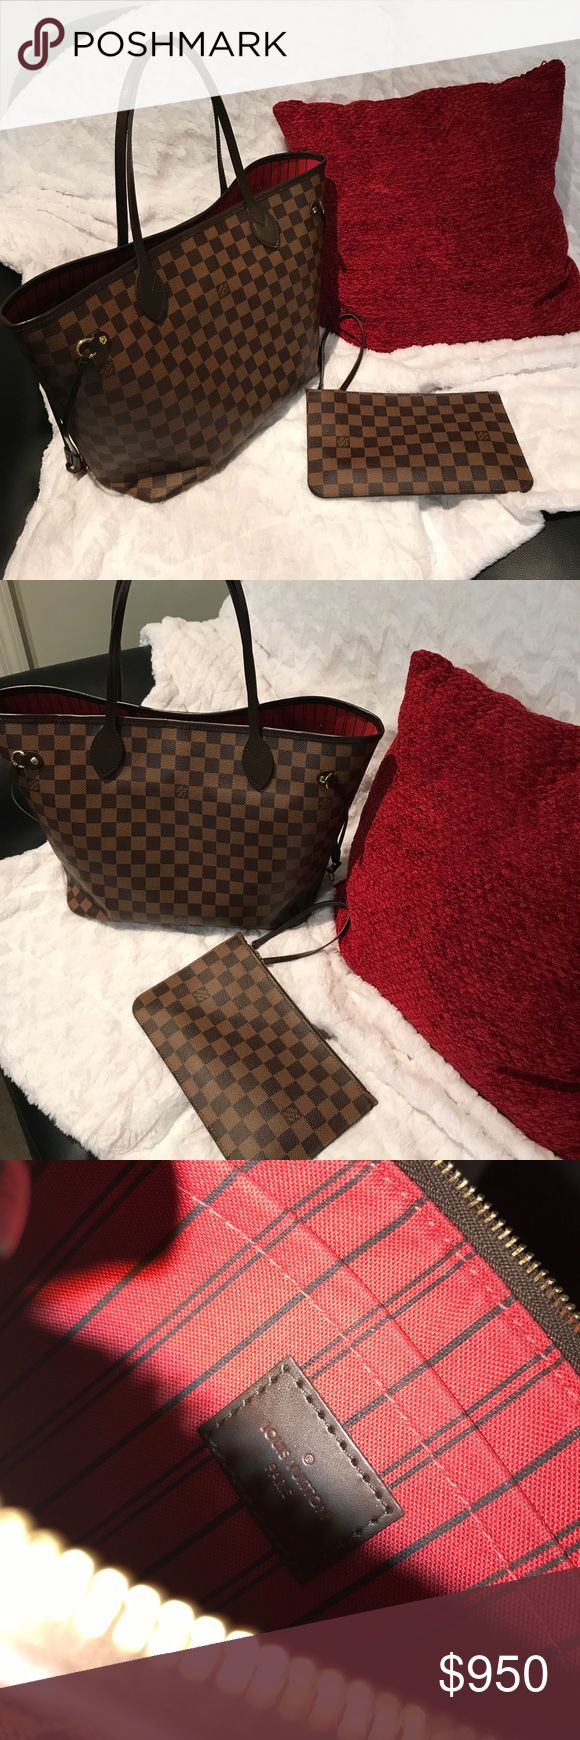 Louis Vuitton Paris bag. Medium size Louis Vuitton bag. Worn occasionally.  This was purchased back in February. Has a few pen marks in the big bag. Louis Vuitton Bags Totes